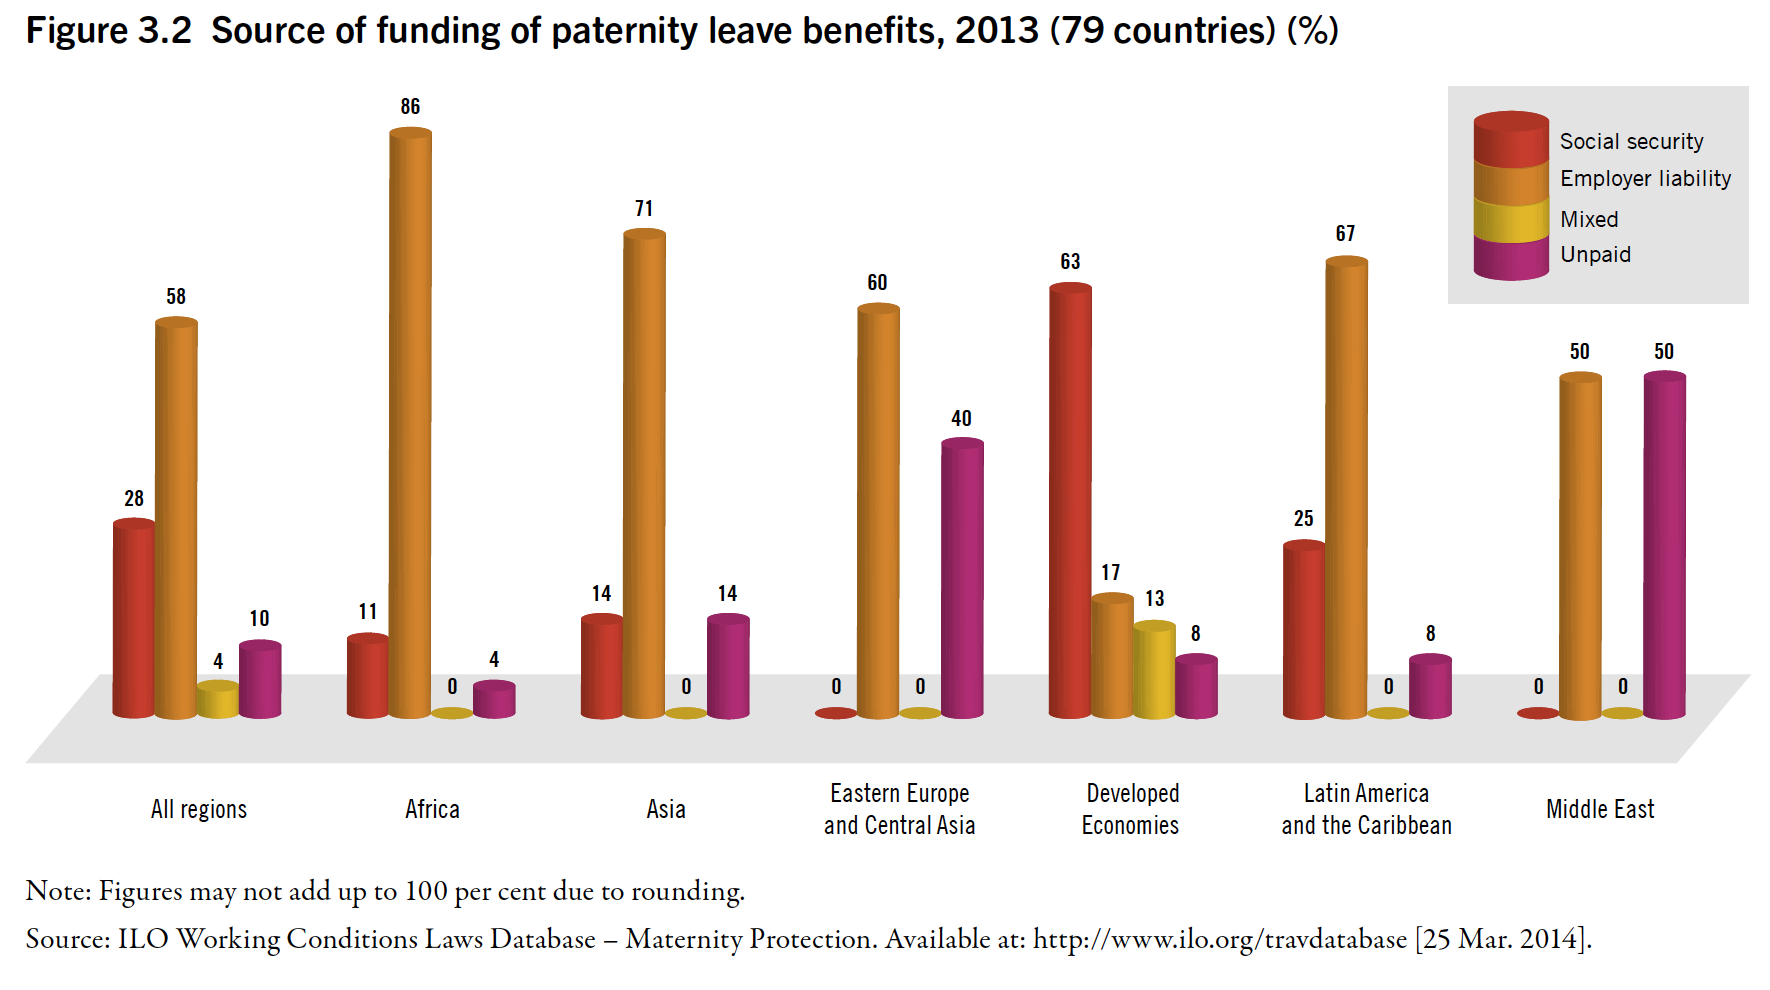 Source of funding of paternity leave 2013